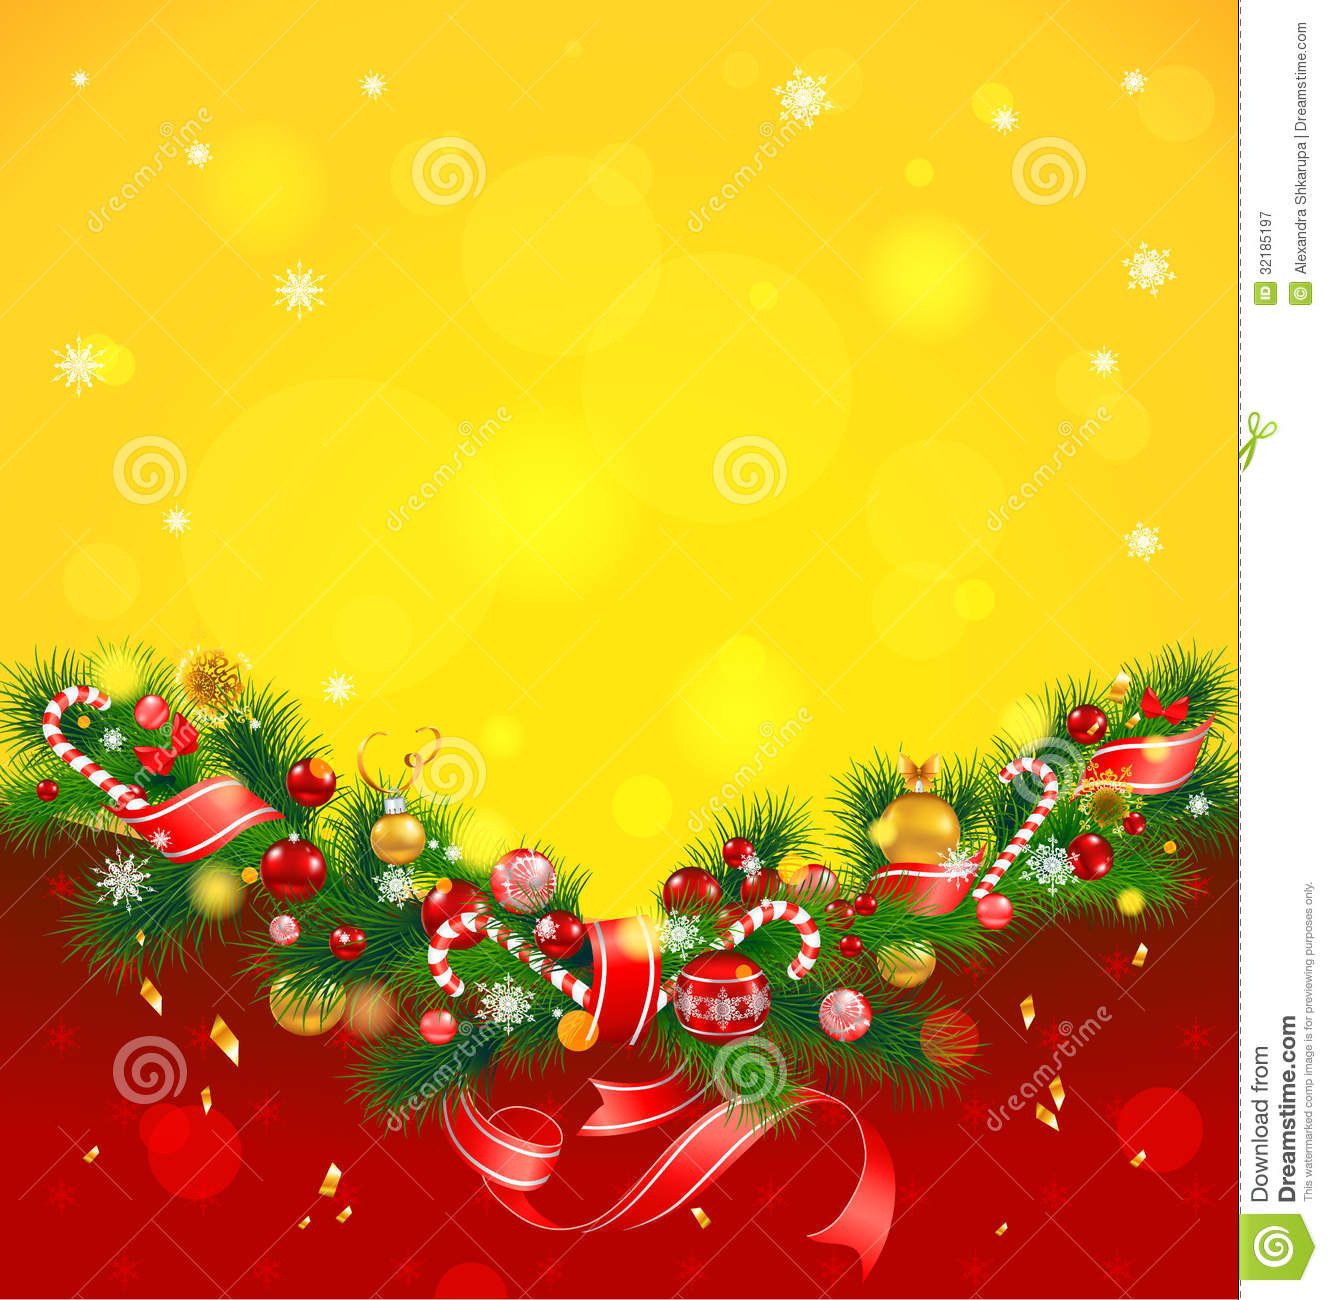 christmas background with fir tree stock vector illustration of